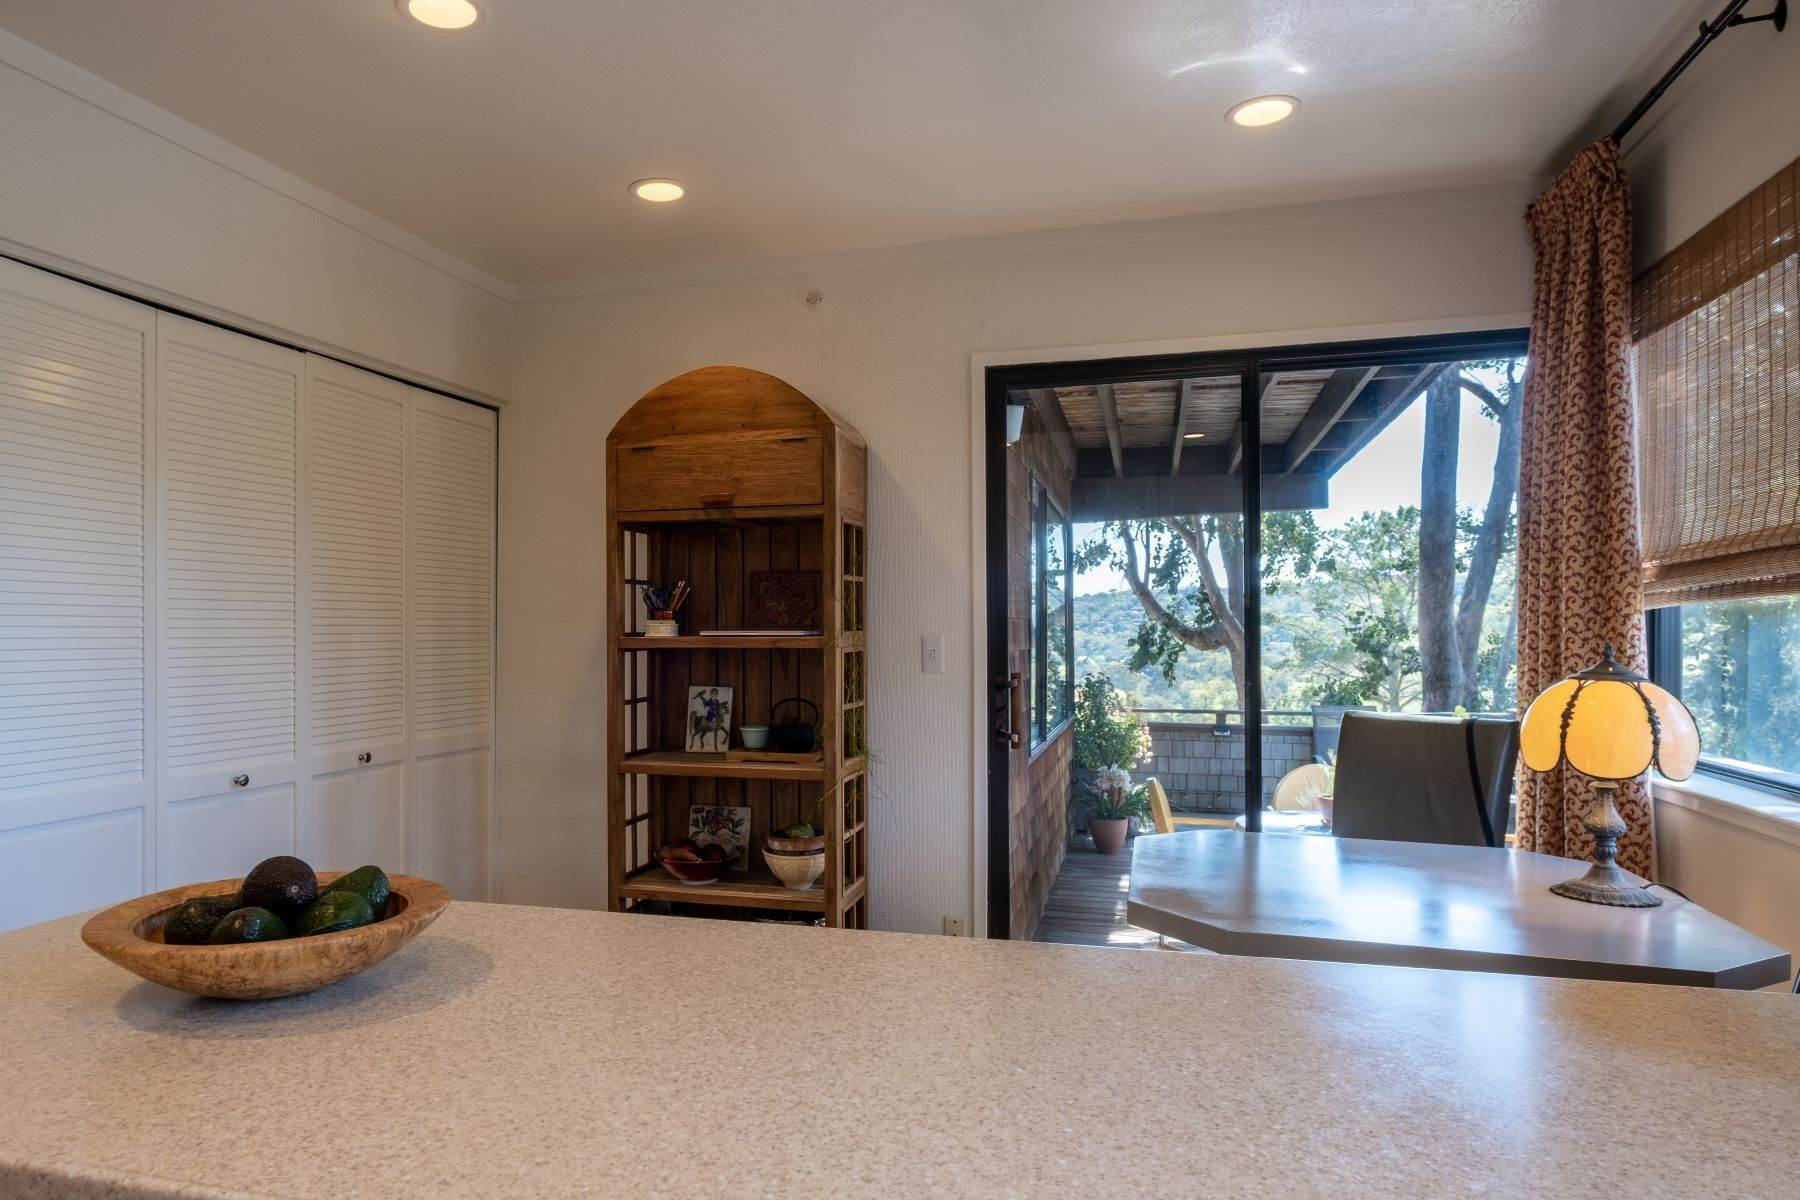 12. Condominiums for Sale at Luxury Townhome with Elevator 130 El Condor Court San Rafael, California 94903 United States